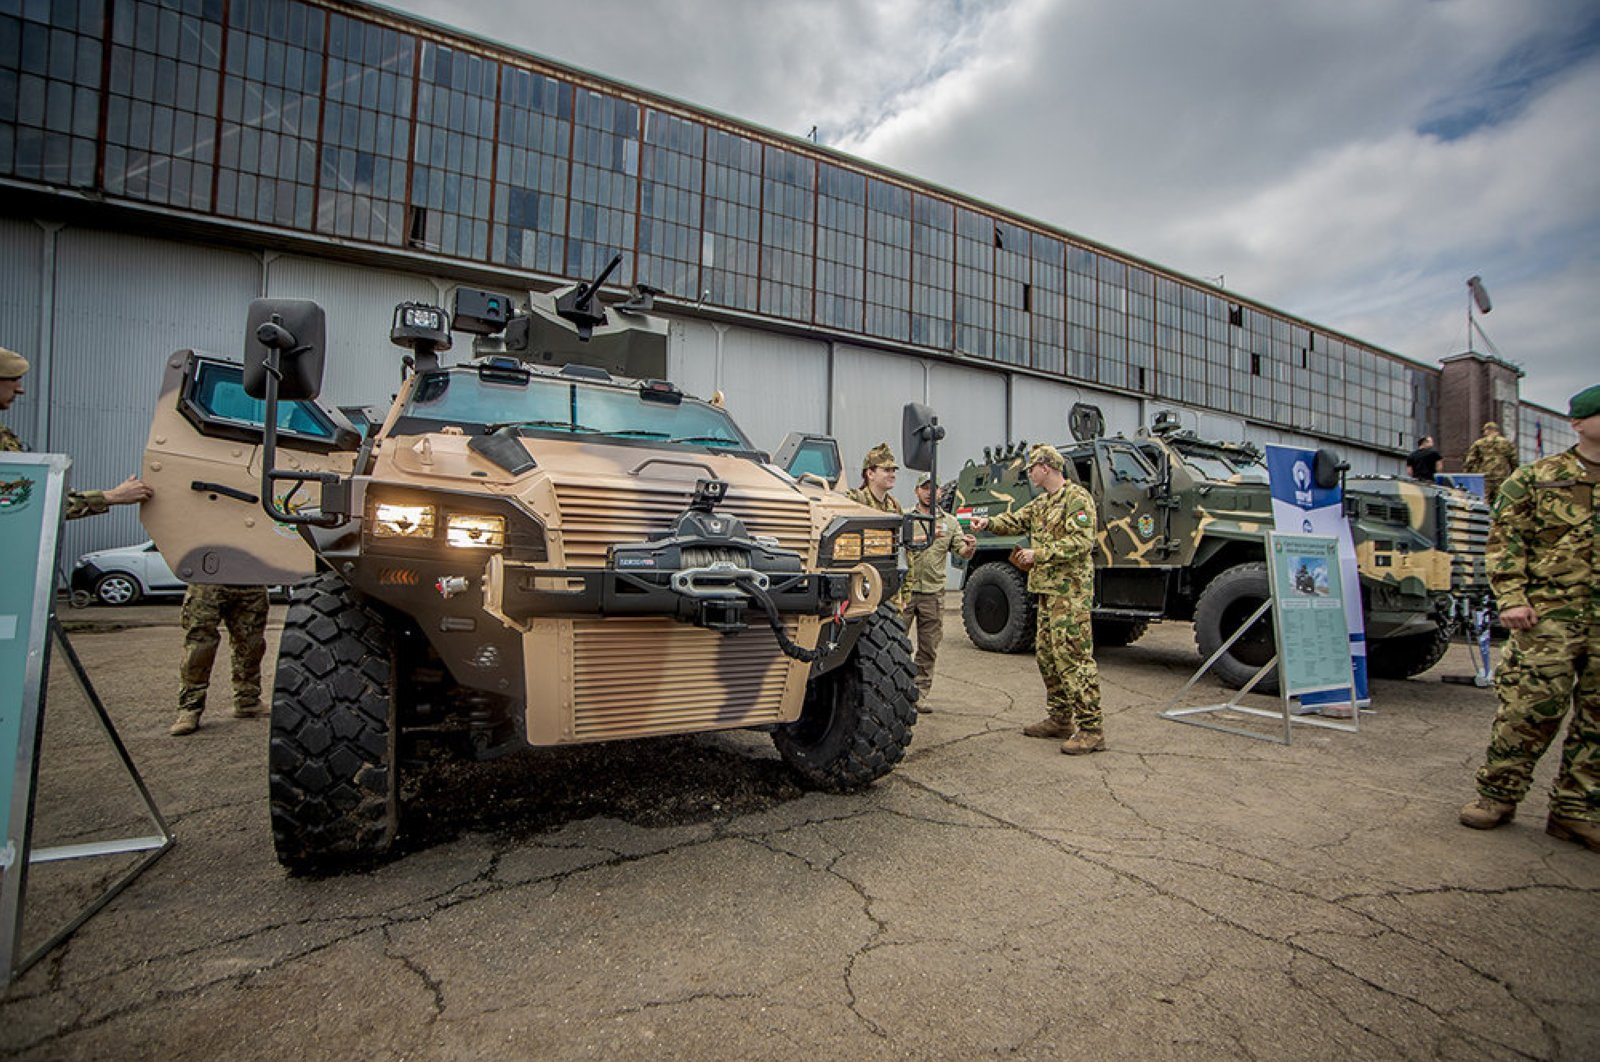 Nurol Makina's armored land vehicles are exhibited at an event in Hungary alongside those of other manufacturers on a purchasing stage at Budaors Airport, Budapest, Hungary, May 20, 2019. (Photo by Hungarian Armed Forces via AA)